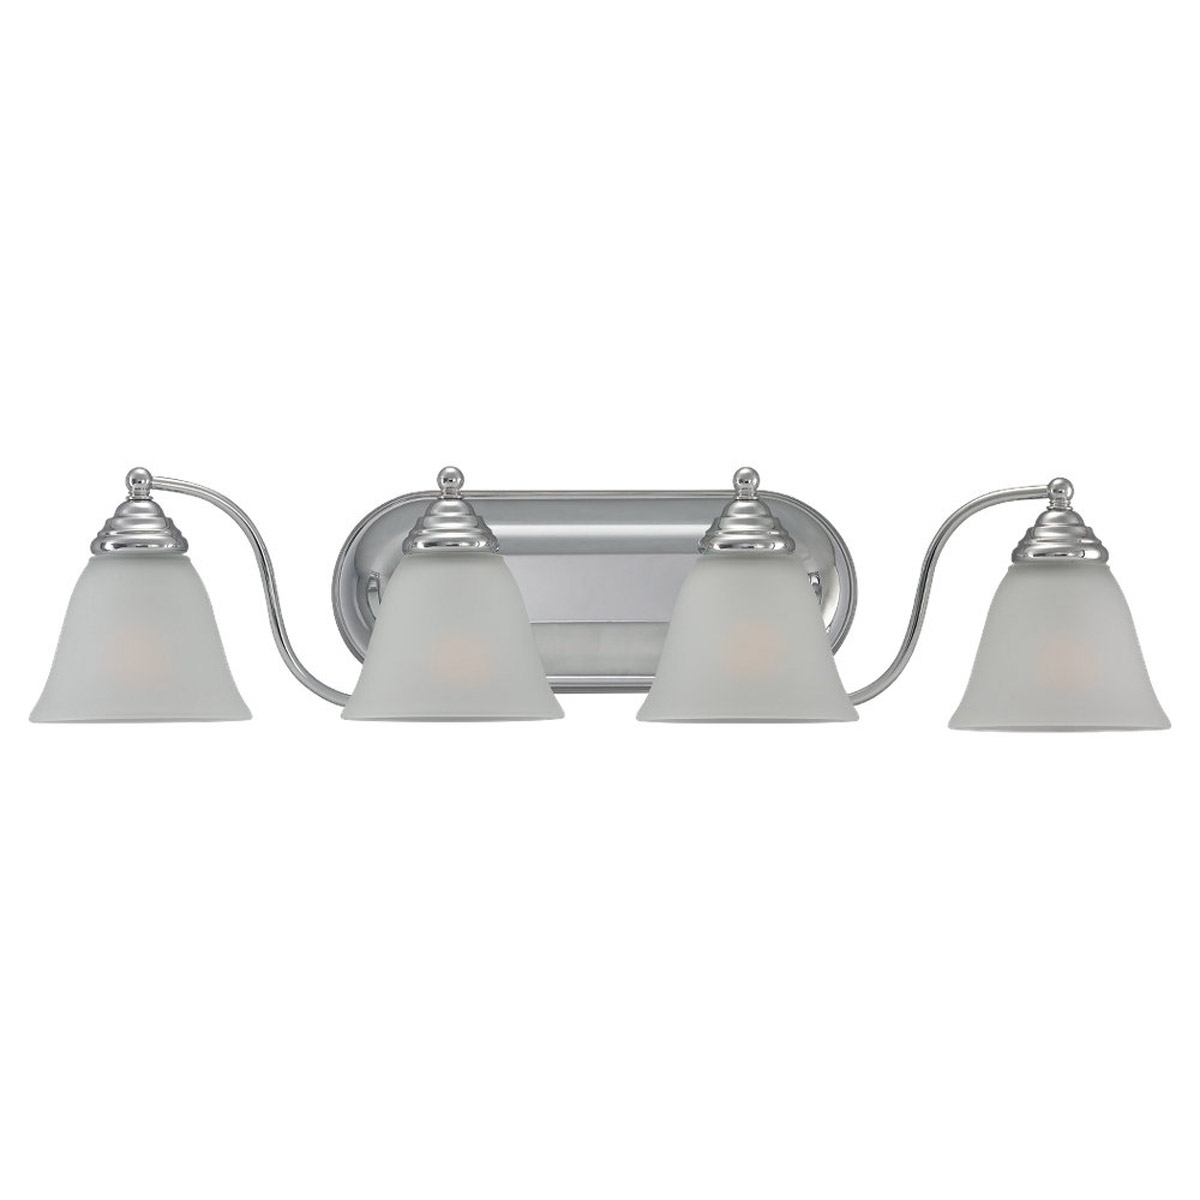 Sea Gull Lighting Albany 4 Light Wall / Bath / Vanity in Chrome 44578-05